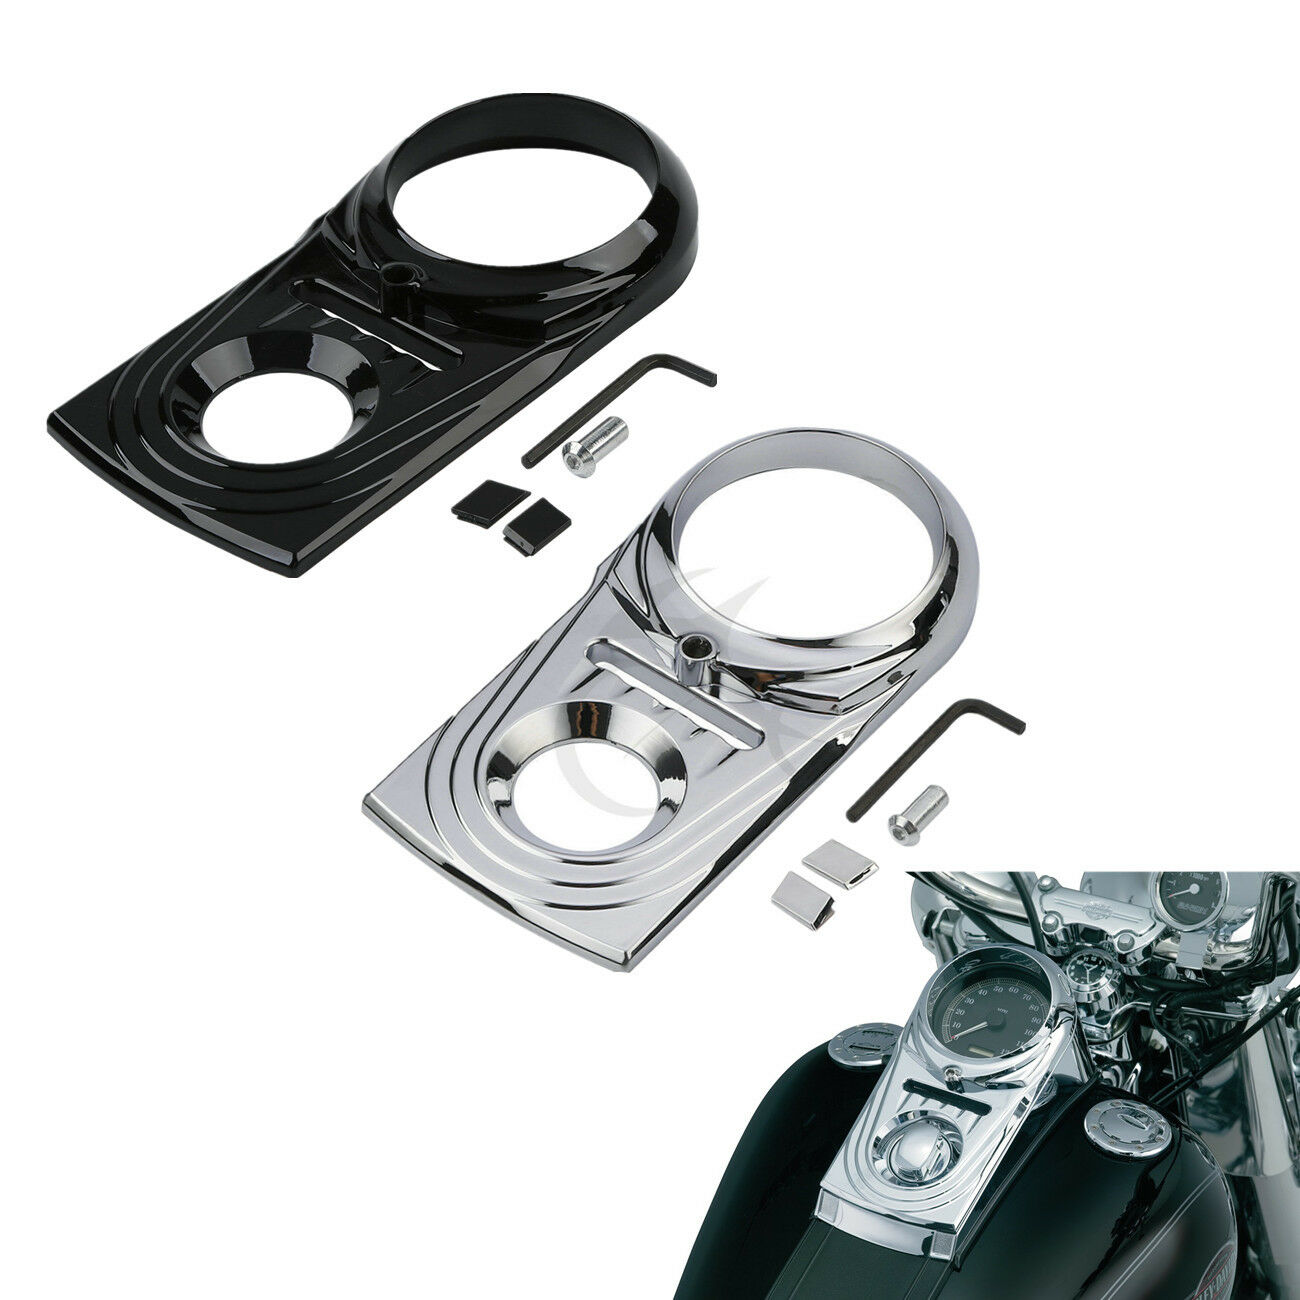 Black//Chrome Dash Panel Insert Cover For Harley Dyna Heritage Softail Fat Boy